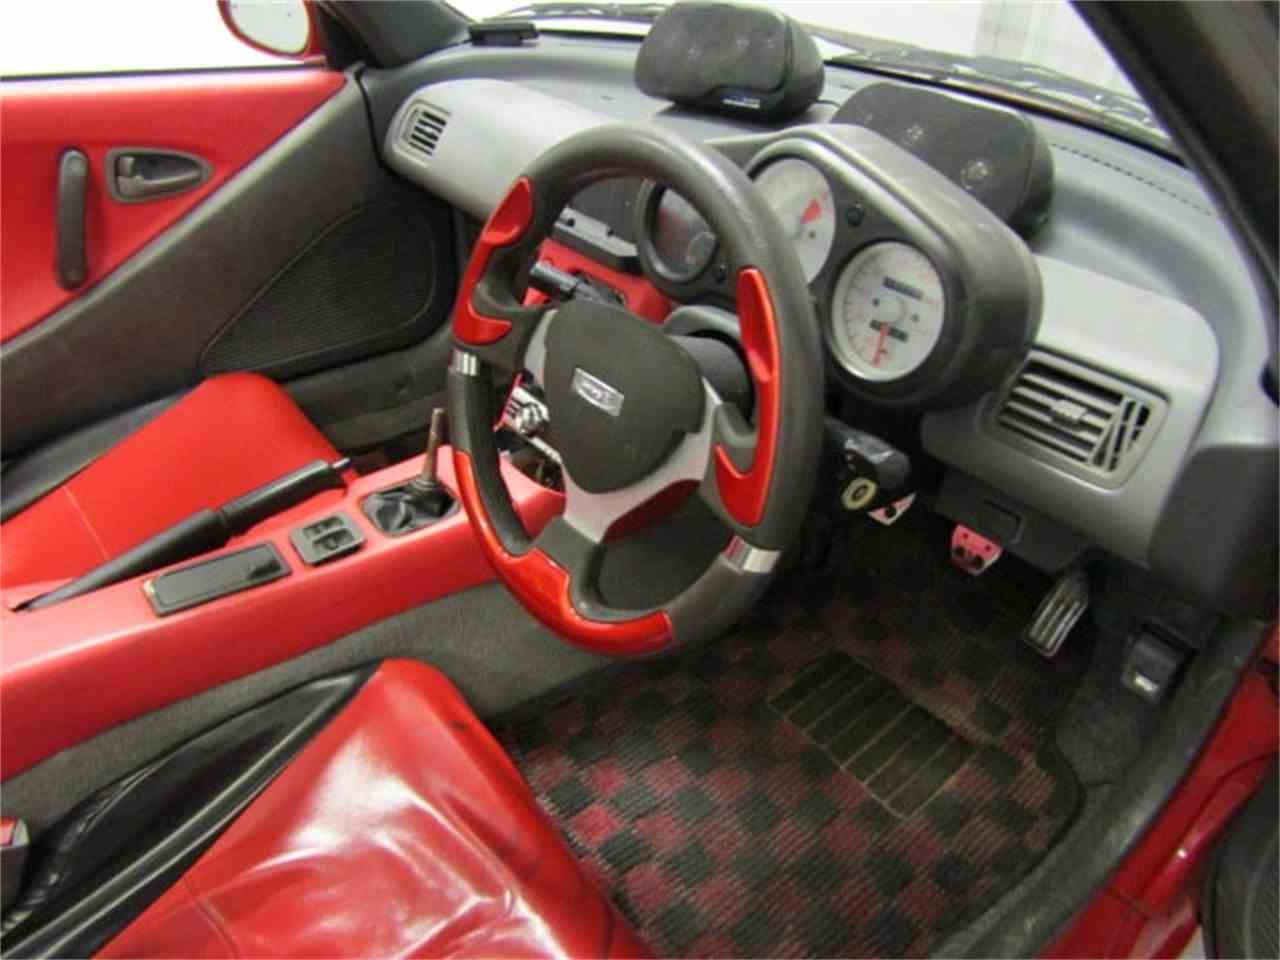 Large Picture of 1991 Honda Beat located in Christiansburg Virginia - $5,959.00 Offered by Duncan Imports & Classic Cars - JL8F